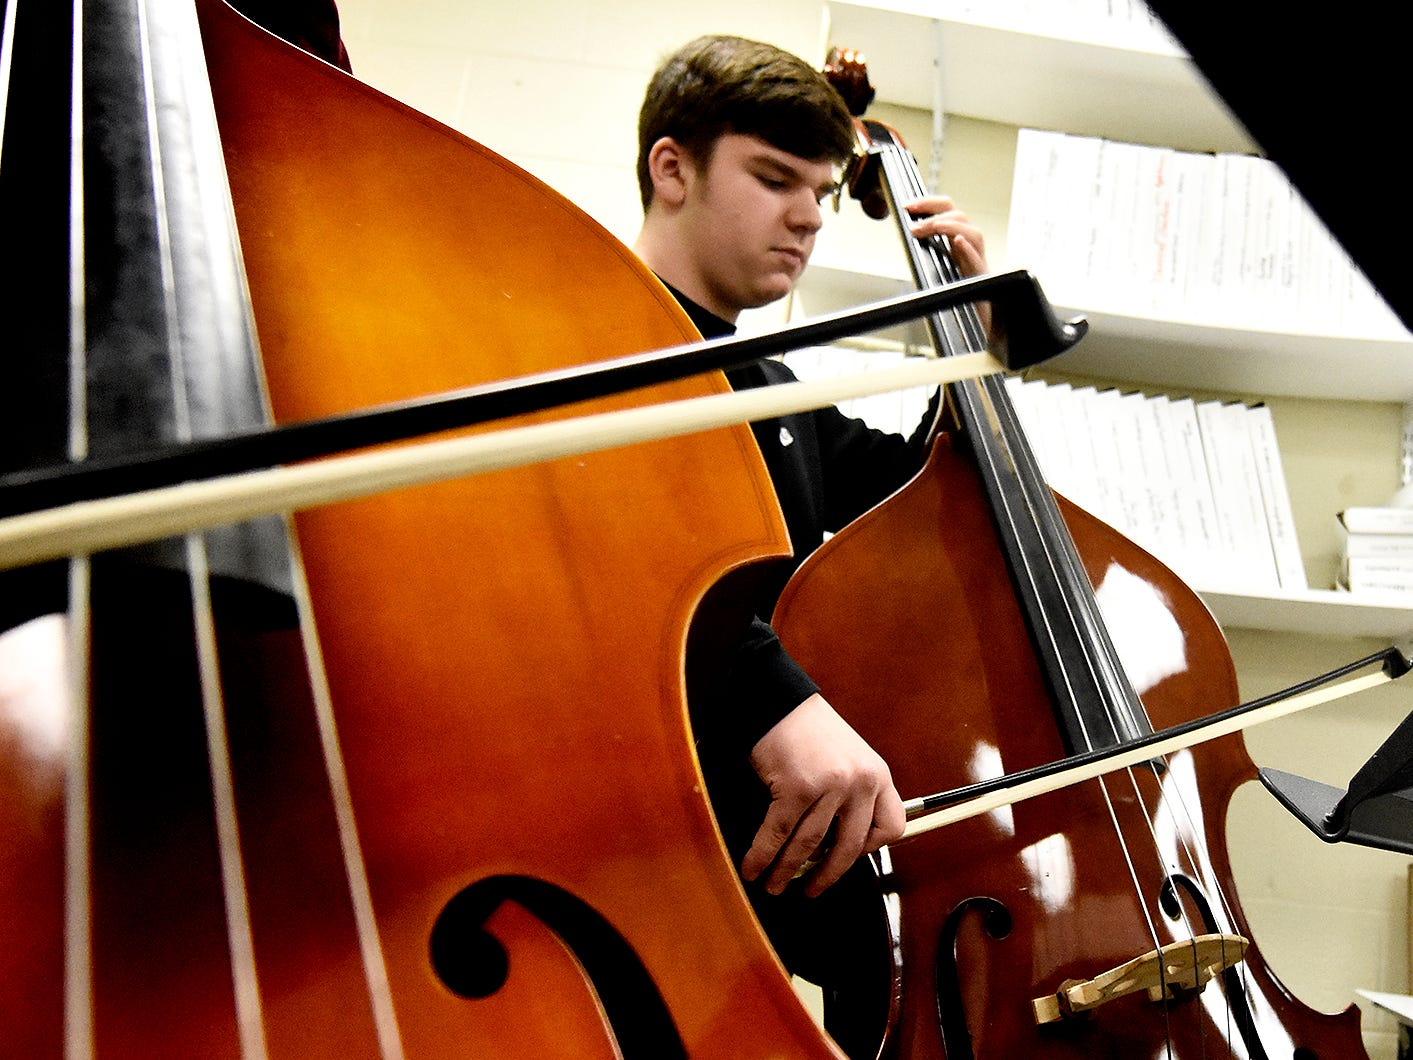 """Red Lion High School orchestra bassist Scott Stover, a freshman, plays adjacent to junior Micah Sumwalt during an orchestra rehearsal at the school Friday, March 1, 2019. The orchestra is fine-tuning """"Obsidian Rainbow"""" which was written by Red Lion graduate and New York composer Derek Cooper. He is premiering the piece via the Red Lion Area High School string orchestra on Wednesday, March 6. Cooper will be at the school working with the orchestra beforehand. Bill Kalina photo"""